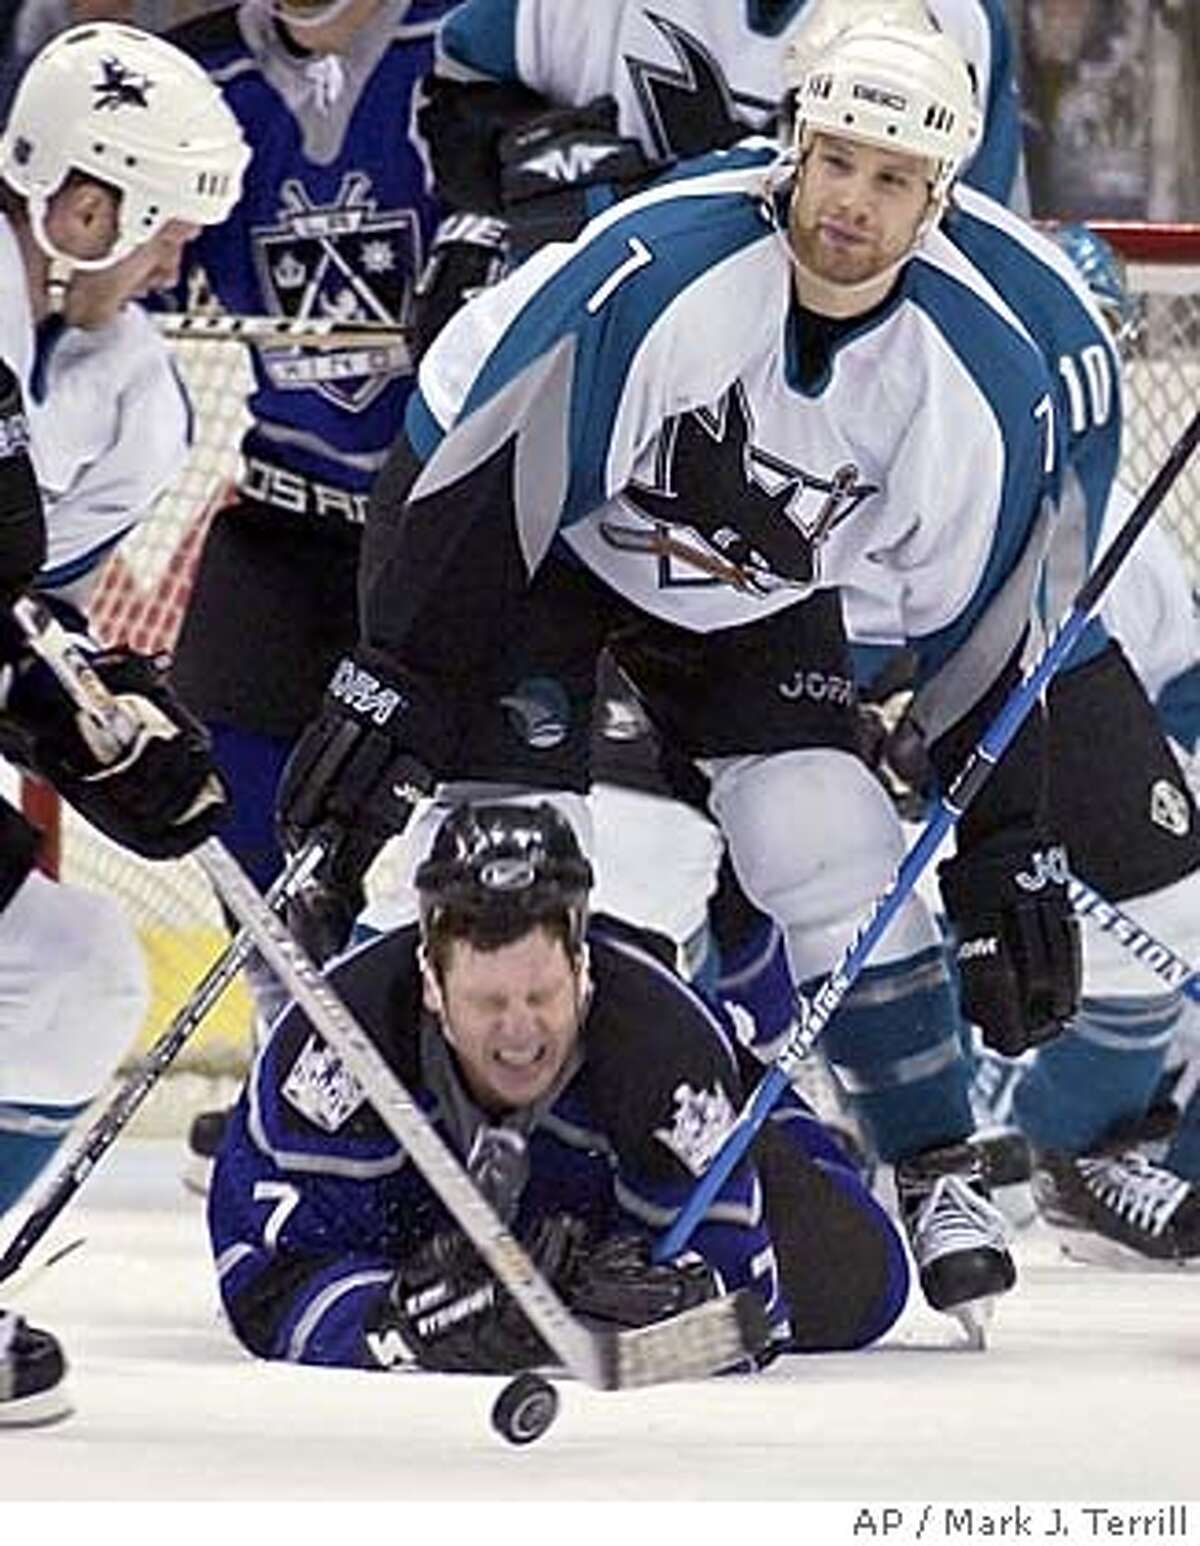 Los Angeles Kings' Derek Armstrong of Canada falls to the ice in front of San Jose Sharks' Brad Stuart of Canada as the Sahrk's Nils Ekman of Sweden takes the puck during the third period, Thursday night, March 18, 2004, in Los Angeles. The Sharks won the game 5-3. (AP Photo/Mark J. Terrill)